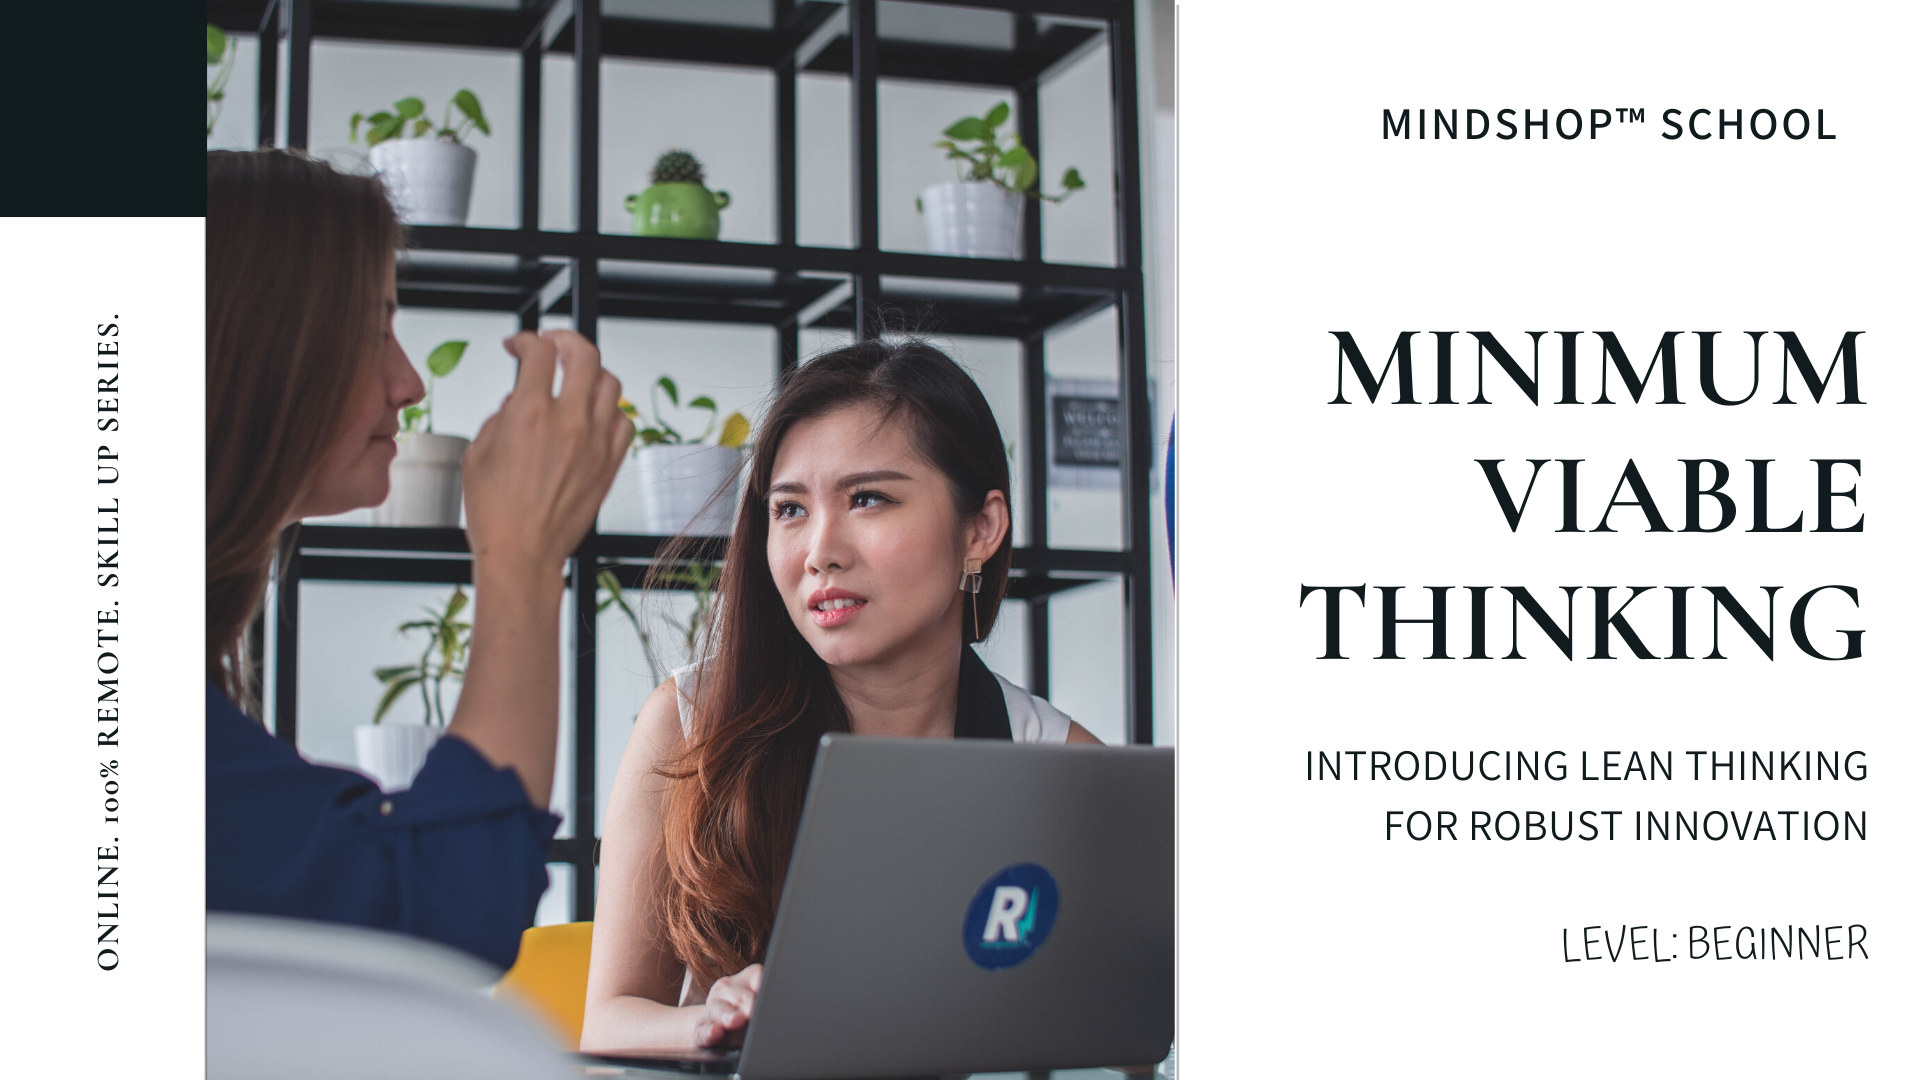 Startups: Develop Innovative Product with Minimum Viable Thinking